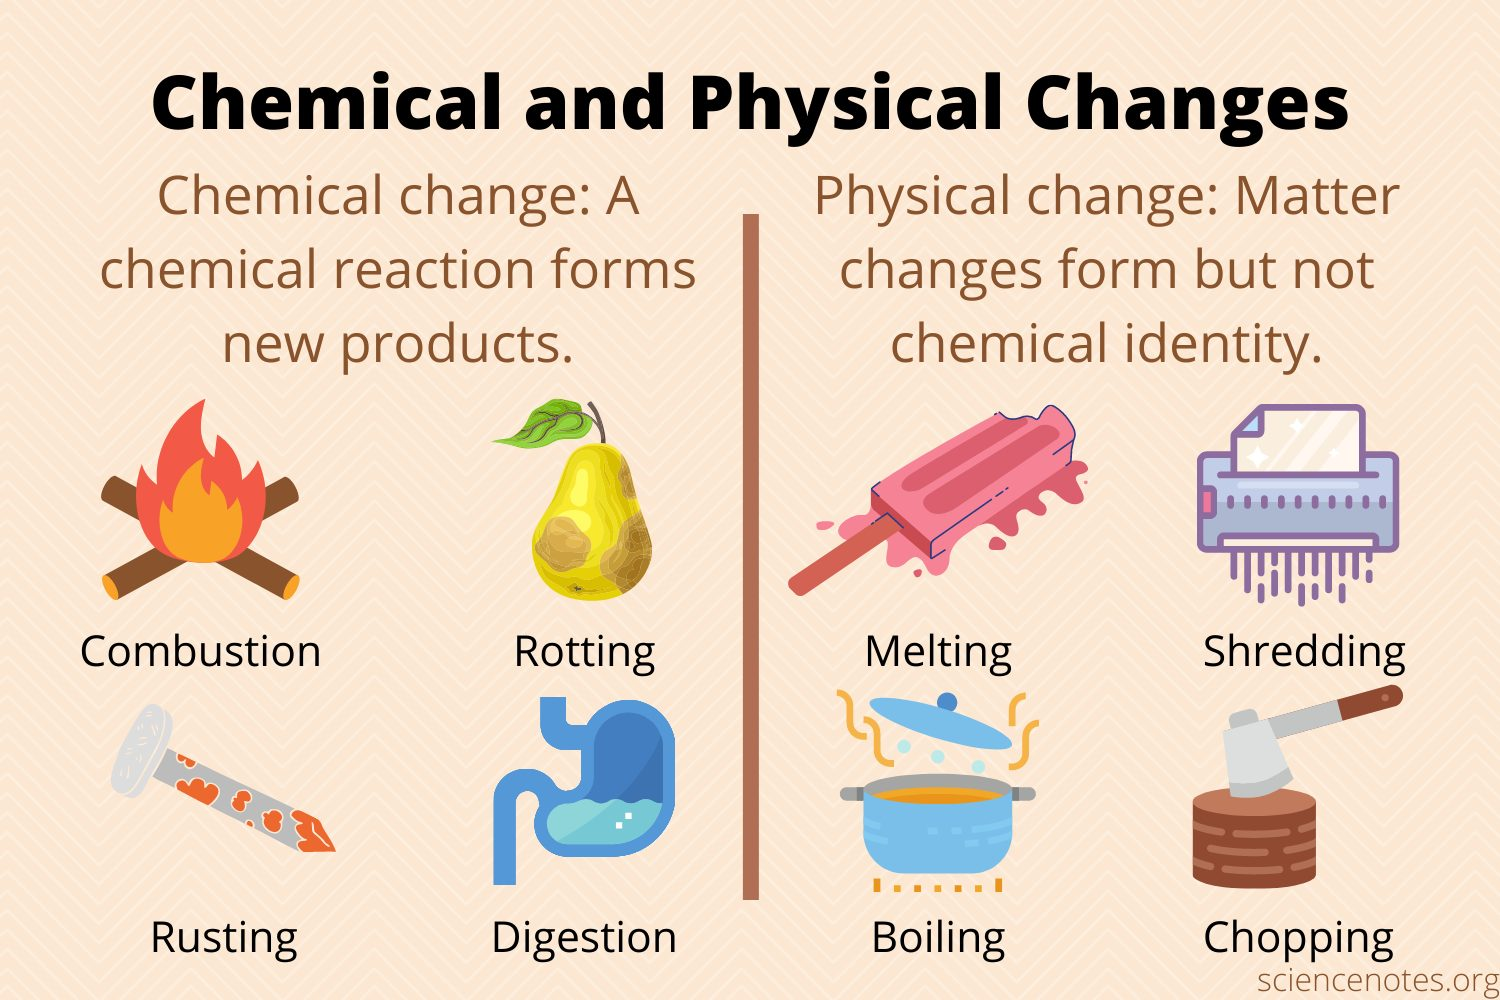 hight resolution of Chemical and Physical Changes of Matter